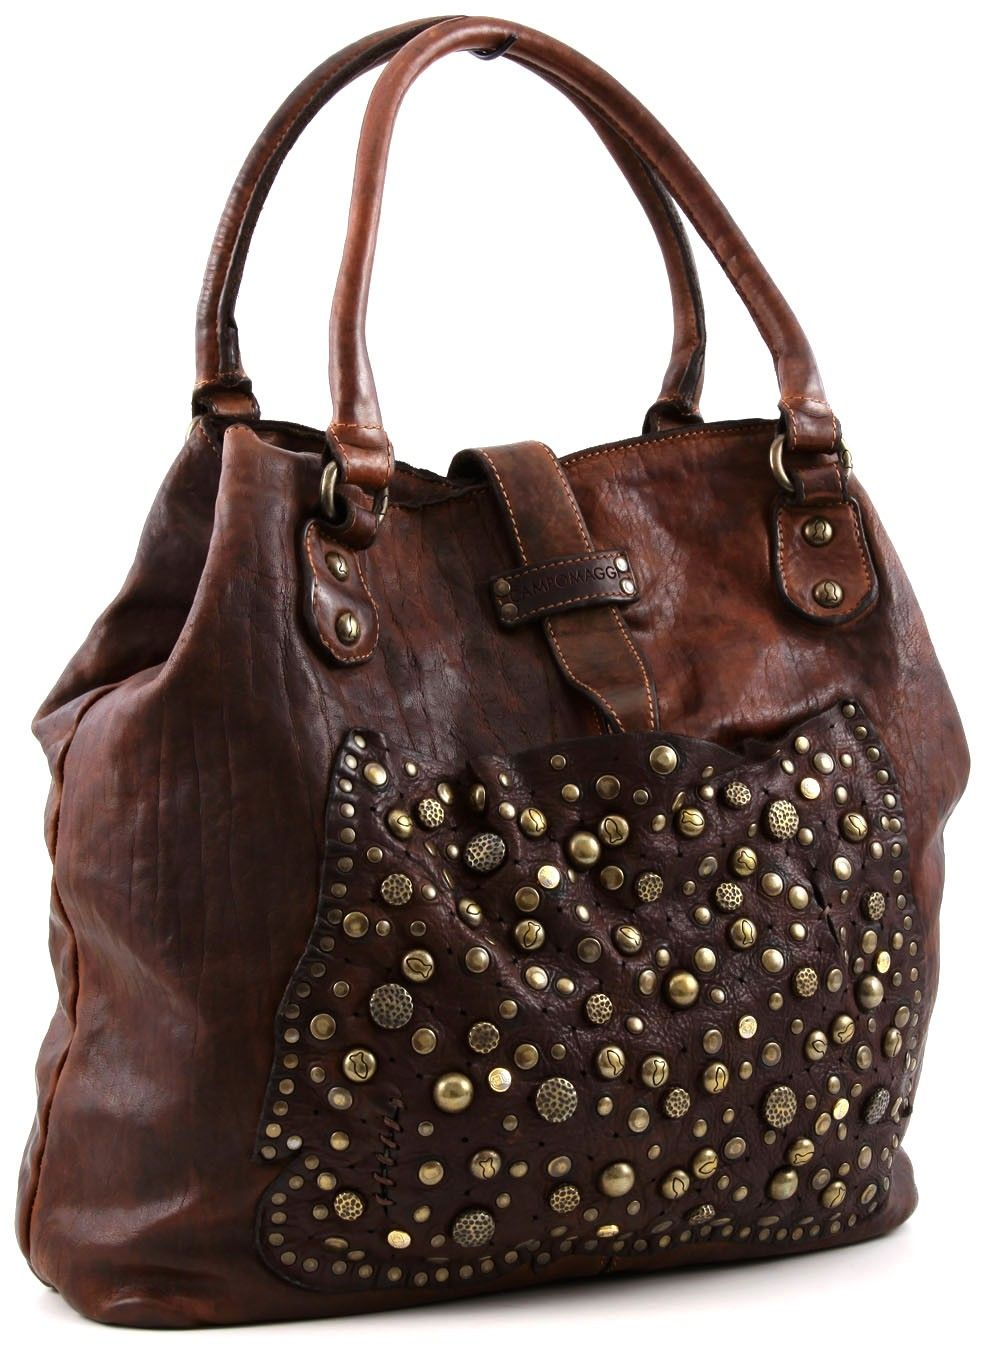 c064ade6c2be Campomaggi Tote Leather 36 cm - C1056VL - Designer Bags Shop - wardow.com